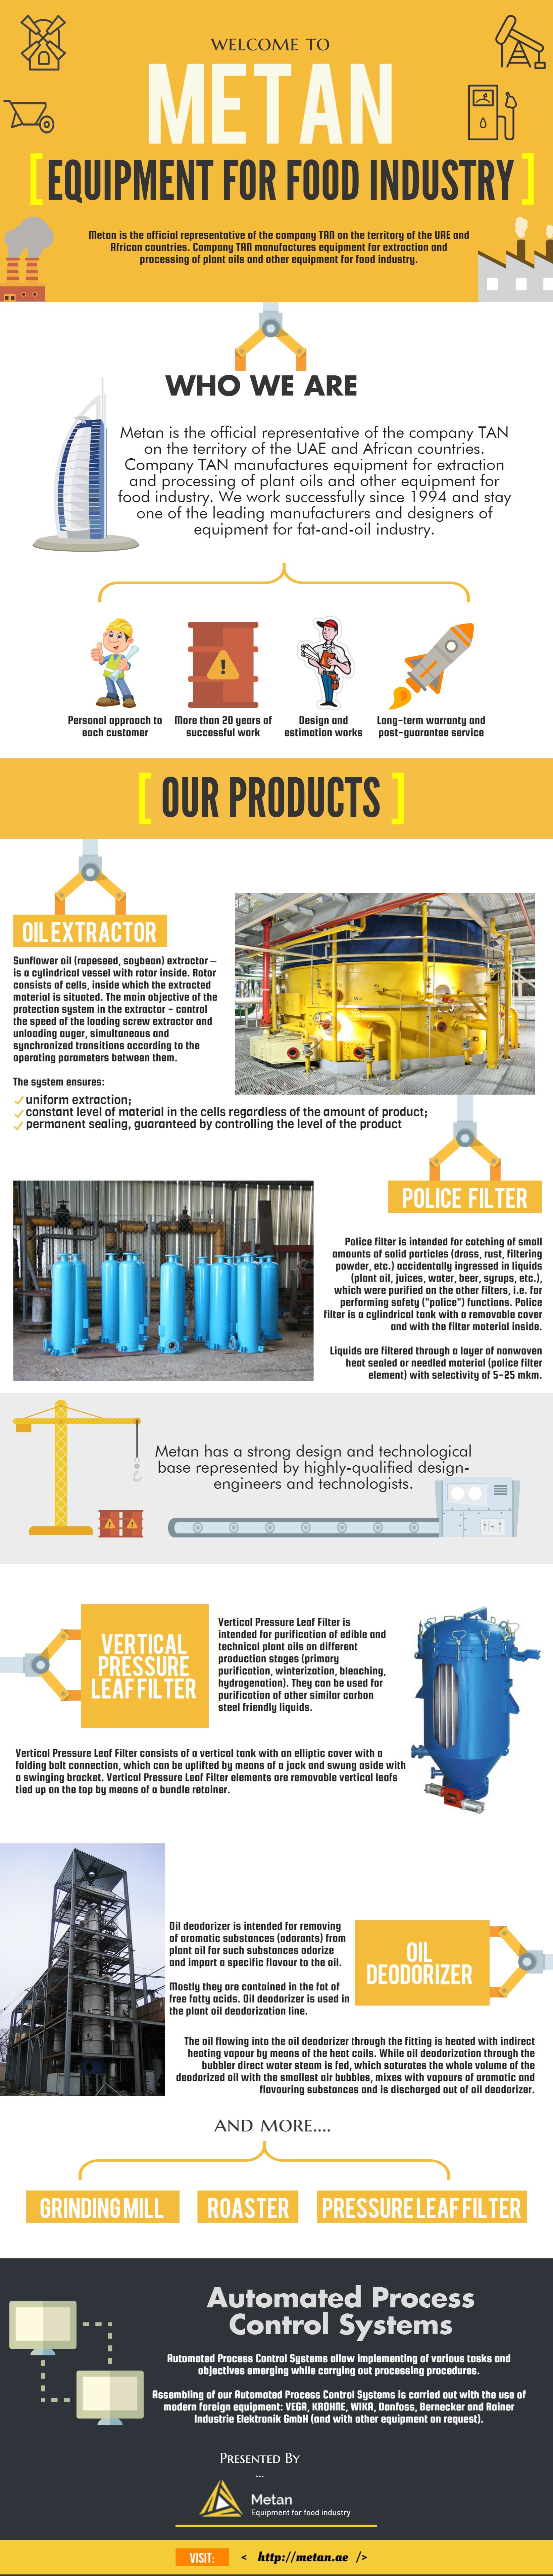 Equipment for Food Industry - An Infographic